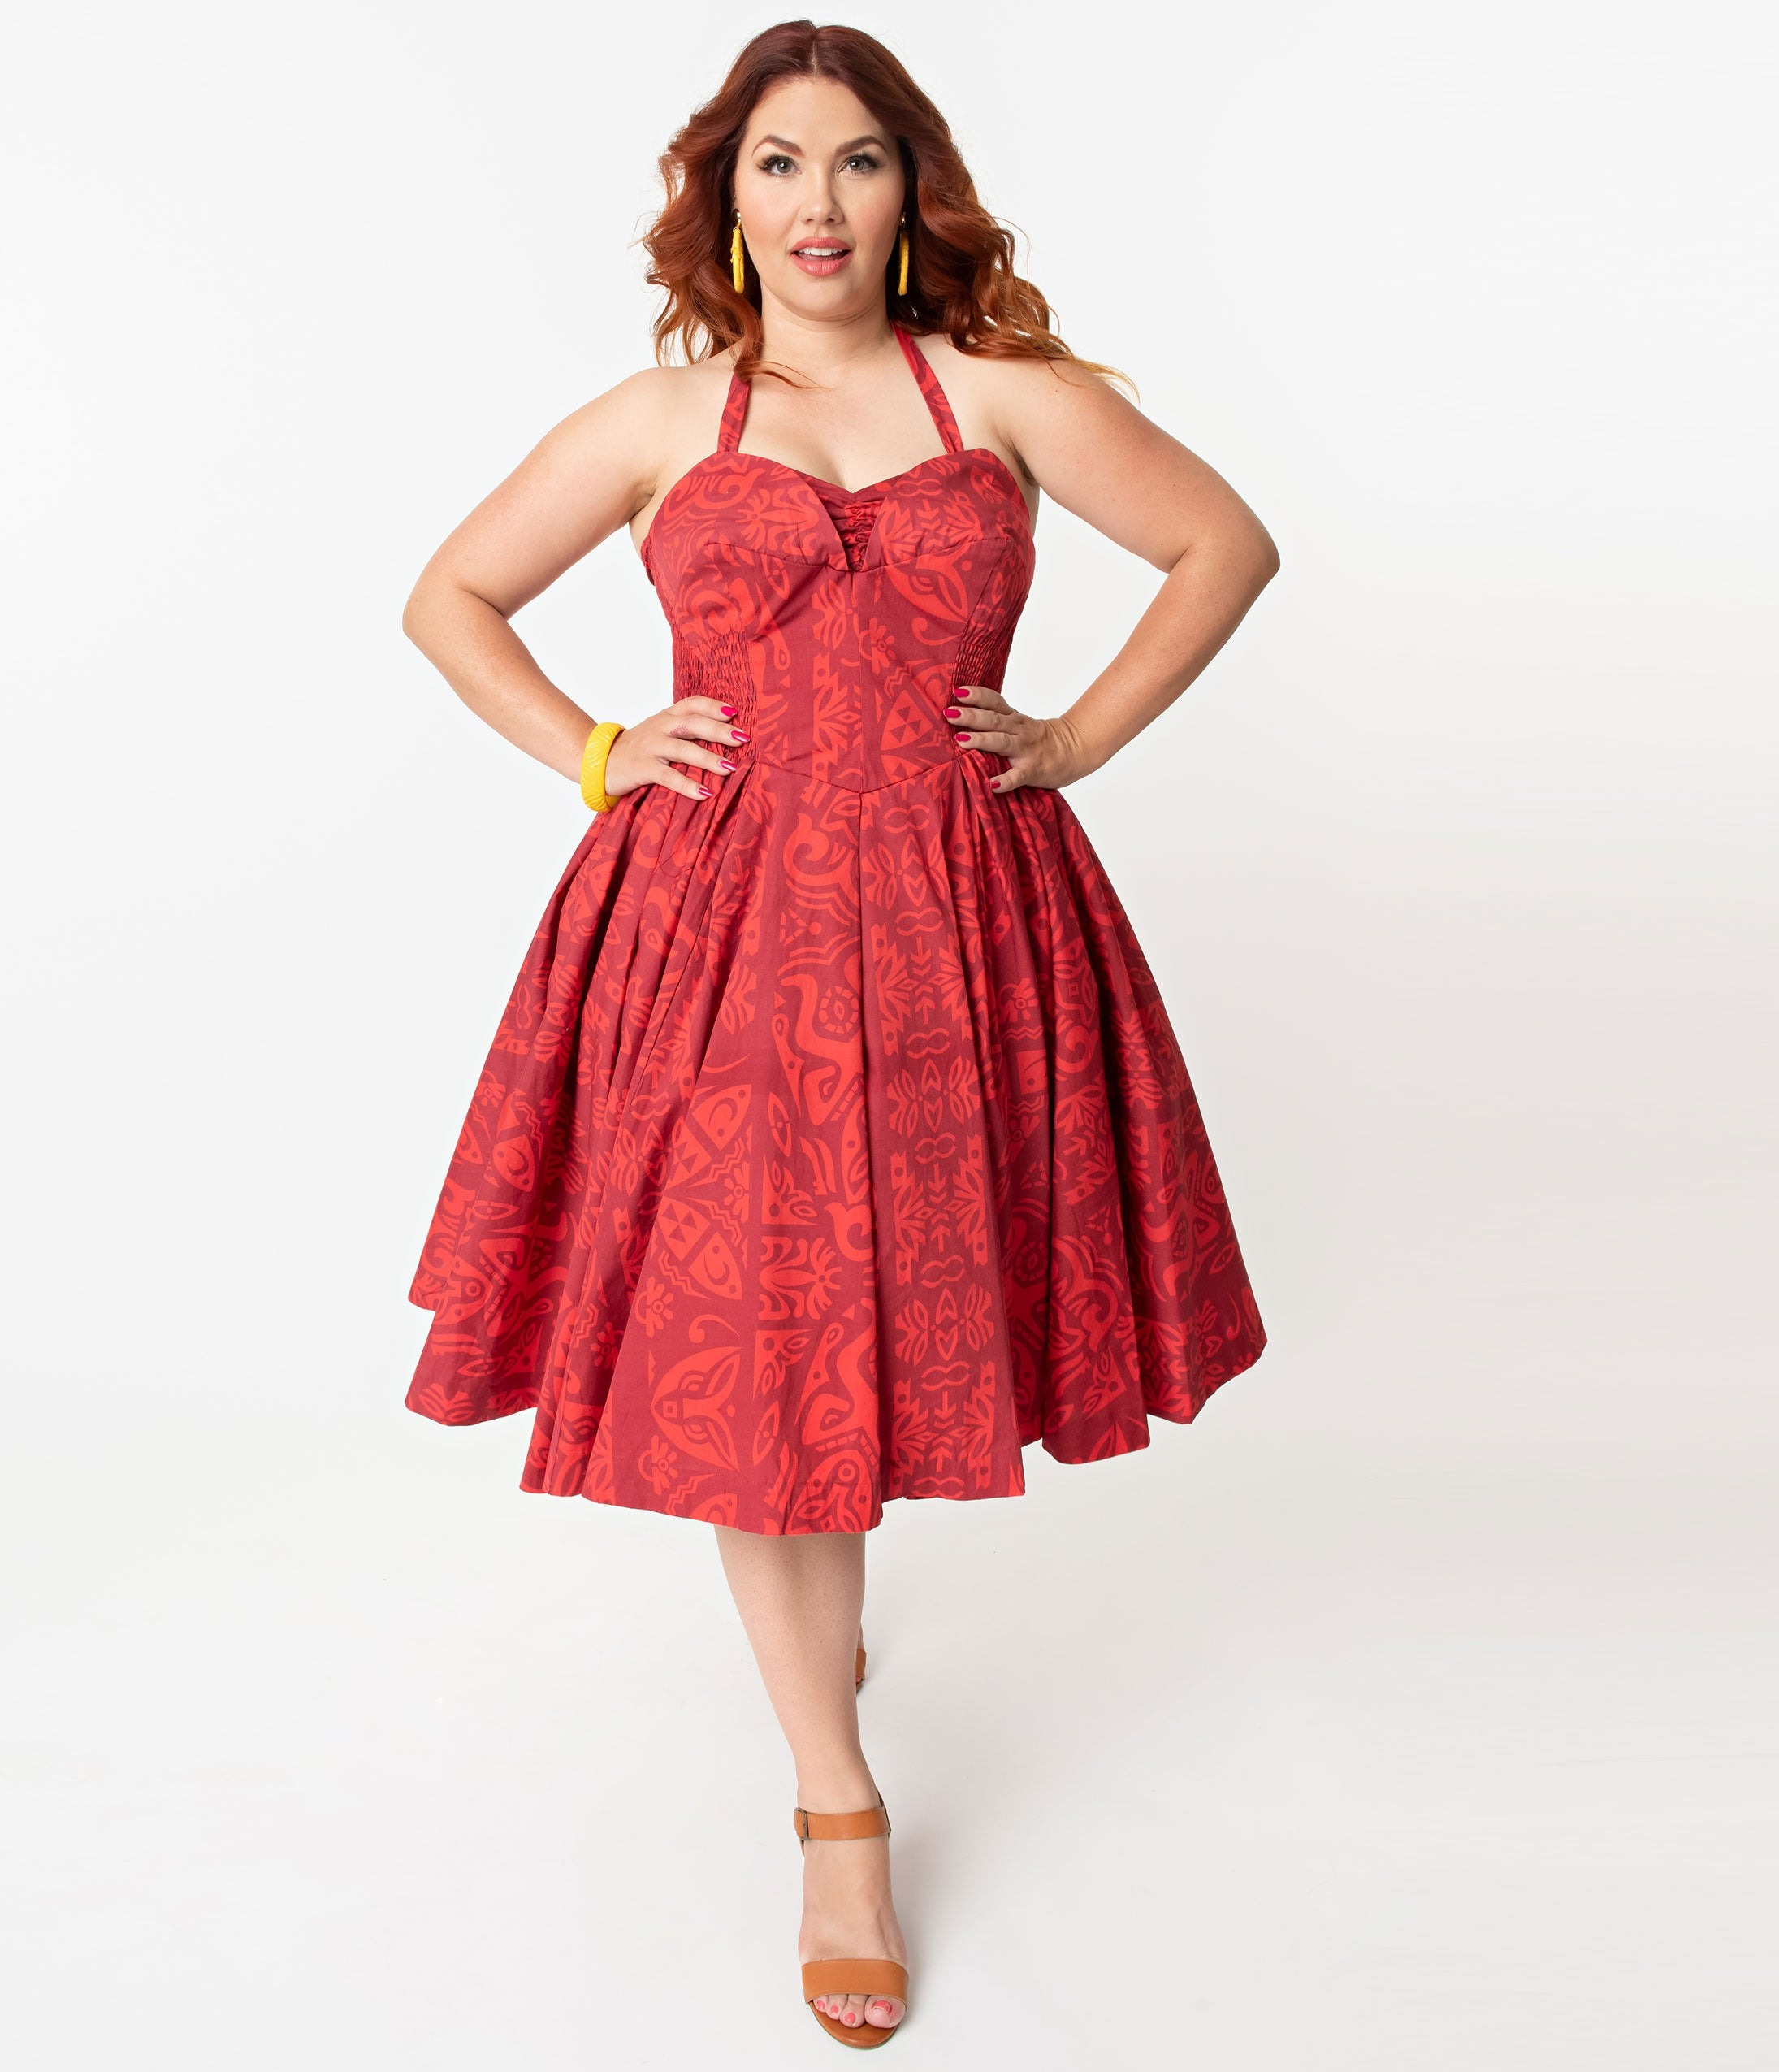 New Fifties Dresses | 50s Inspired Dresses Alfred Shaheen Plus Size Red Tiki Pareau Print Hawaiian Swing Dress $126.00 AT vintagedancer.com